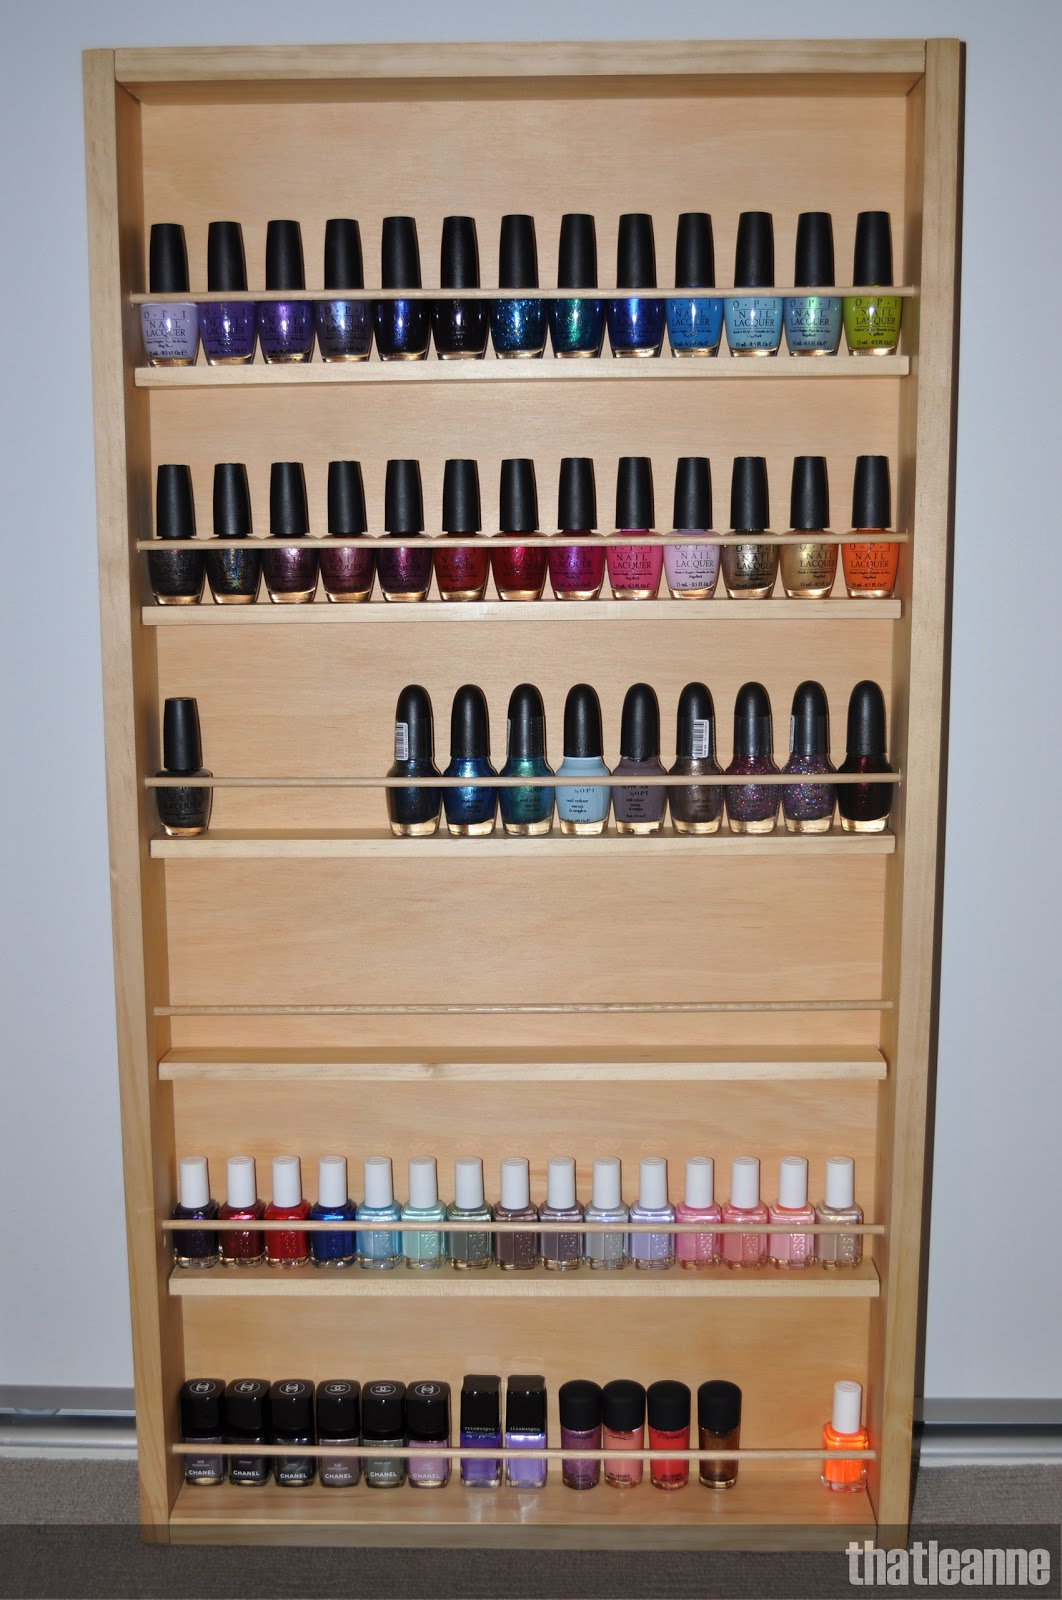 thatleanne nail polish organisation and storage new. Black Bedroom Furniture Sets. Home Design Ideas